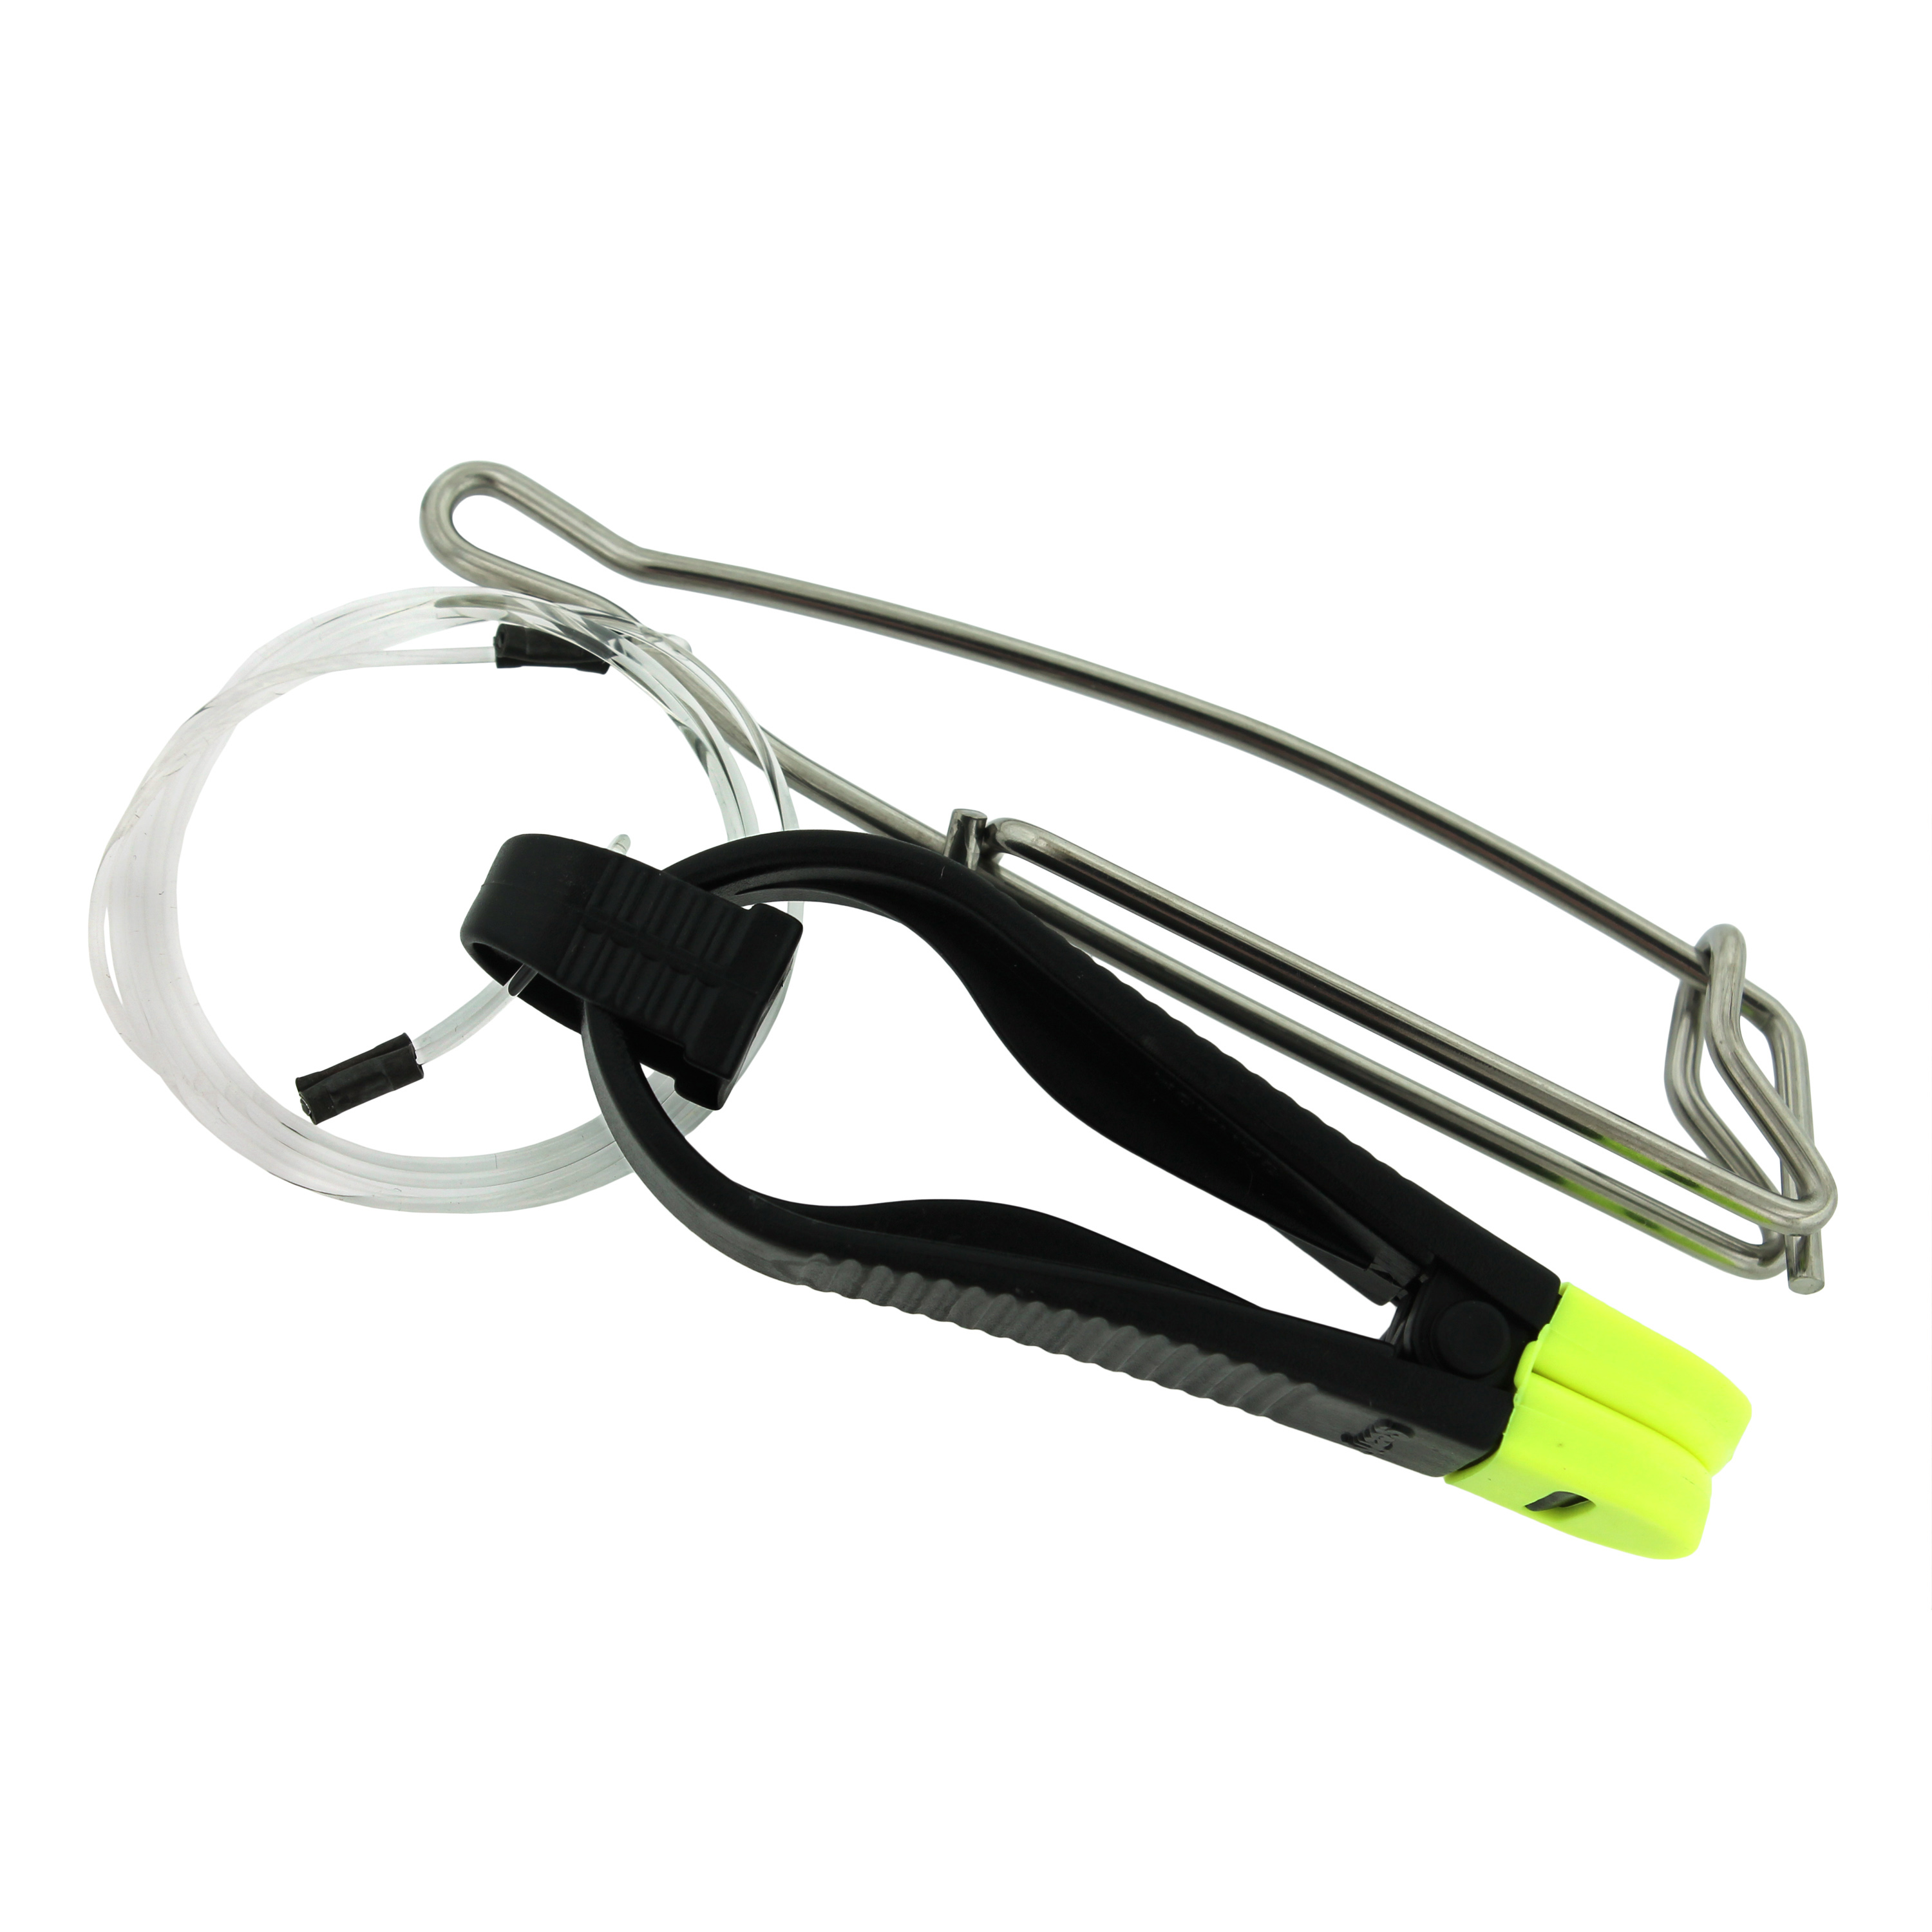 Scotty Power Grip Pls Rls30 Leader w/Cable Snap SKU: 1172 with Elite Tactical Cloth